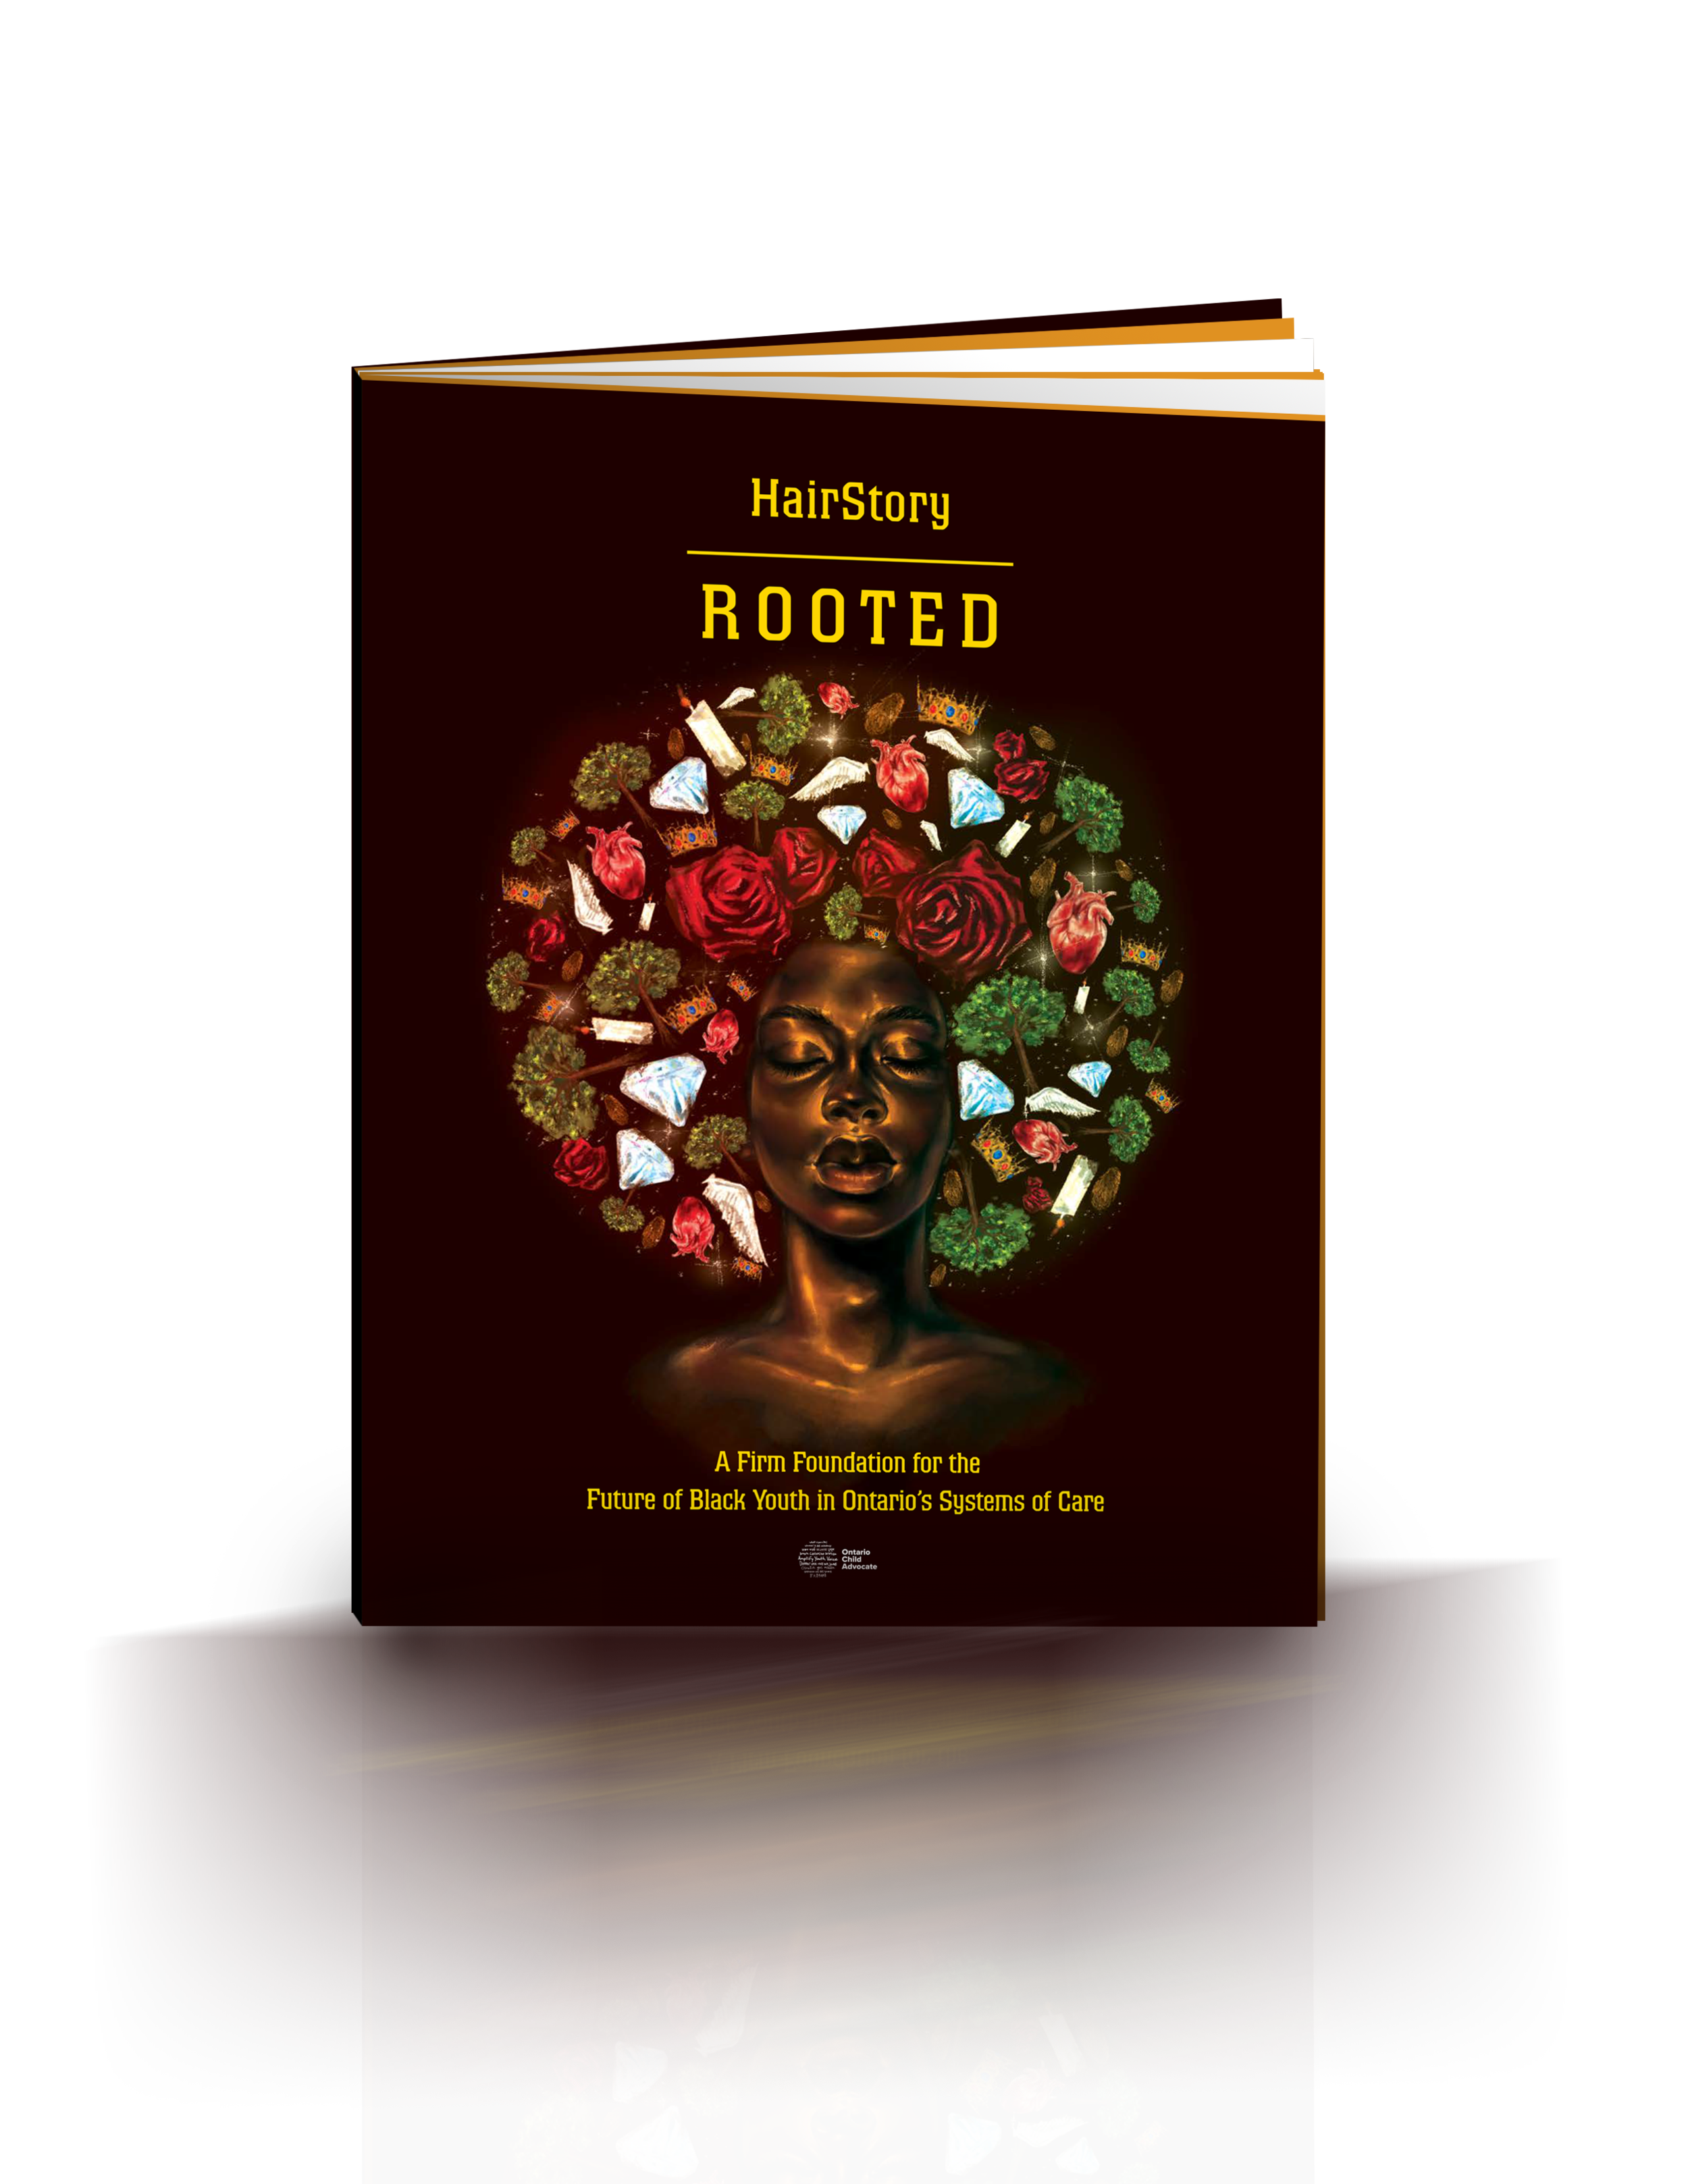 HAIRSTORY RELEASES REPORT - HairStory: ROOTED - A Firm Foundation for the Future of Black Youth In Ontario's Care Systems released March 20, 2019click on image to read the report.